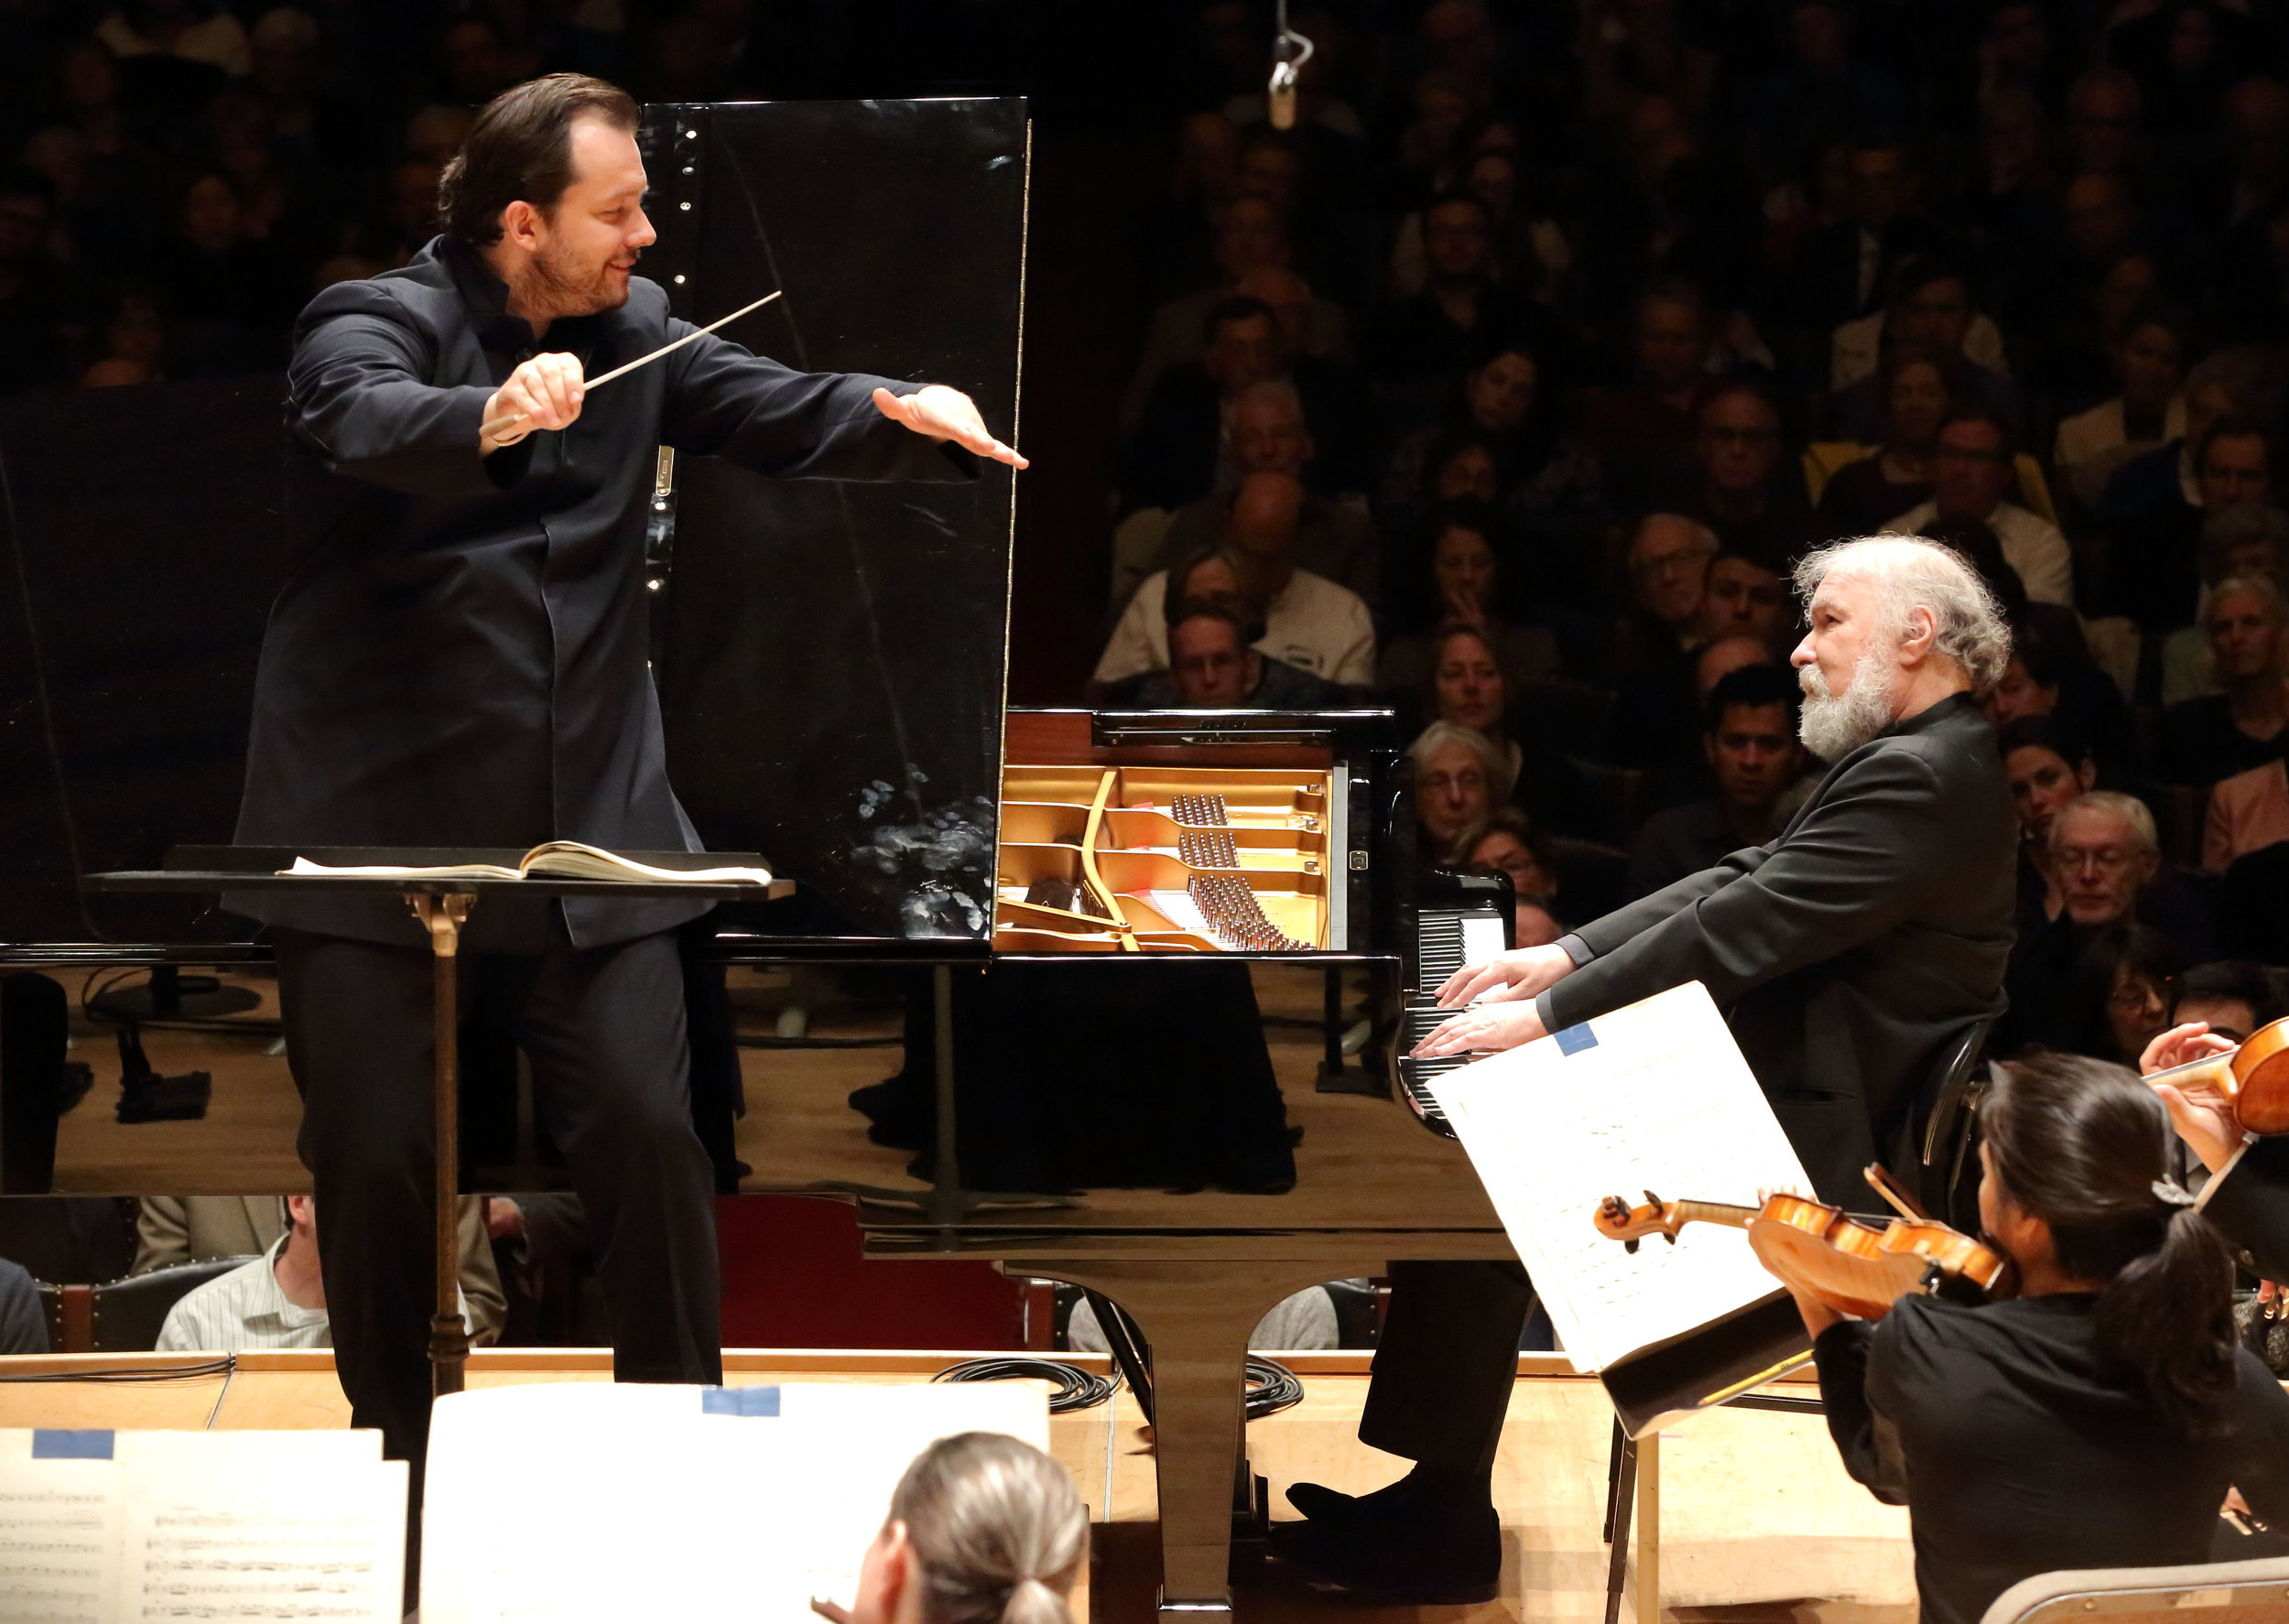 Andris Nelsons conducts the Boston Symphony Orchestra with pianist Radu Lupu, 20 April 2017. Hilary Scott photograph